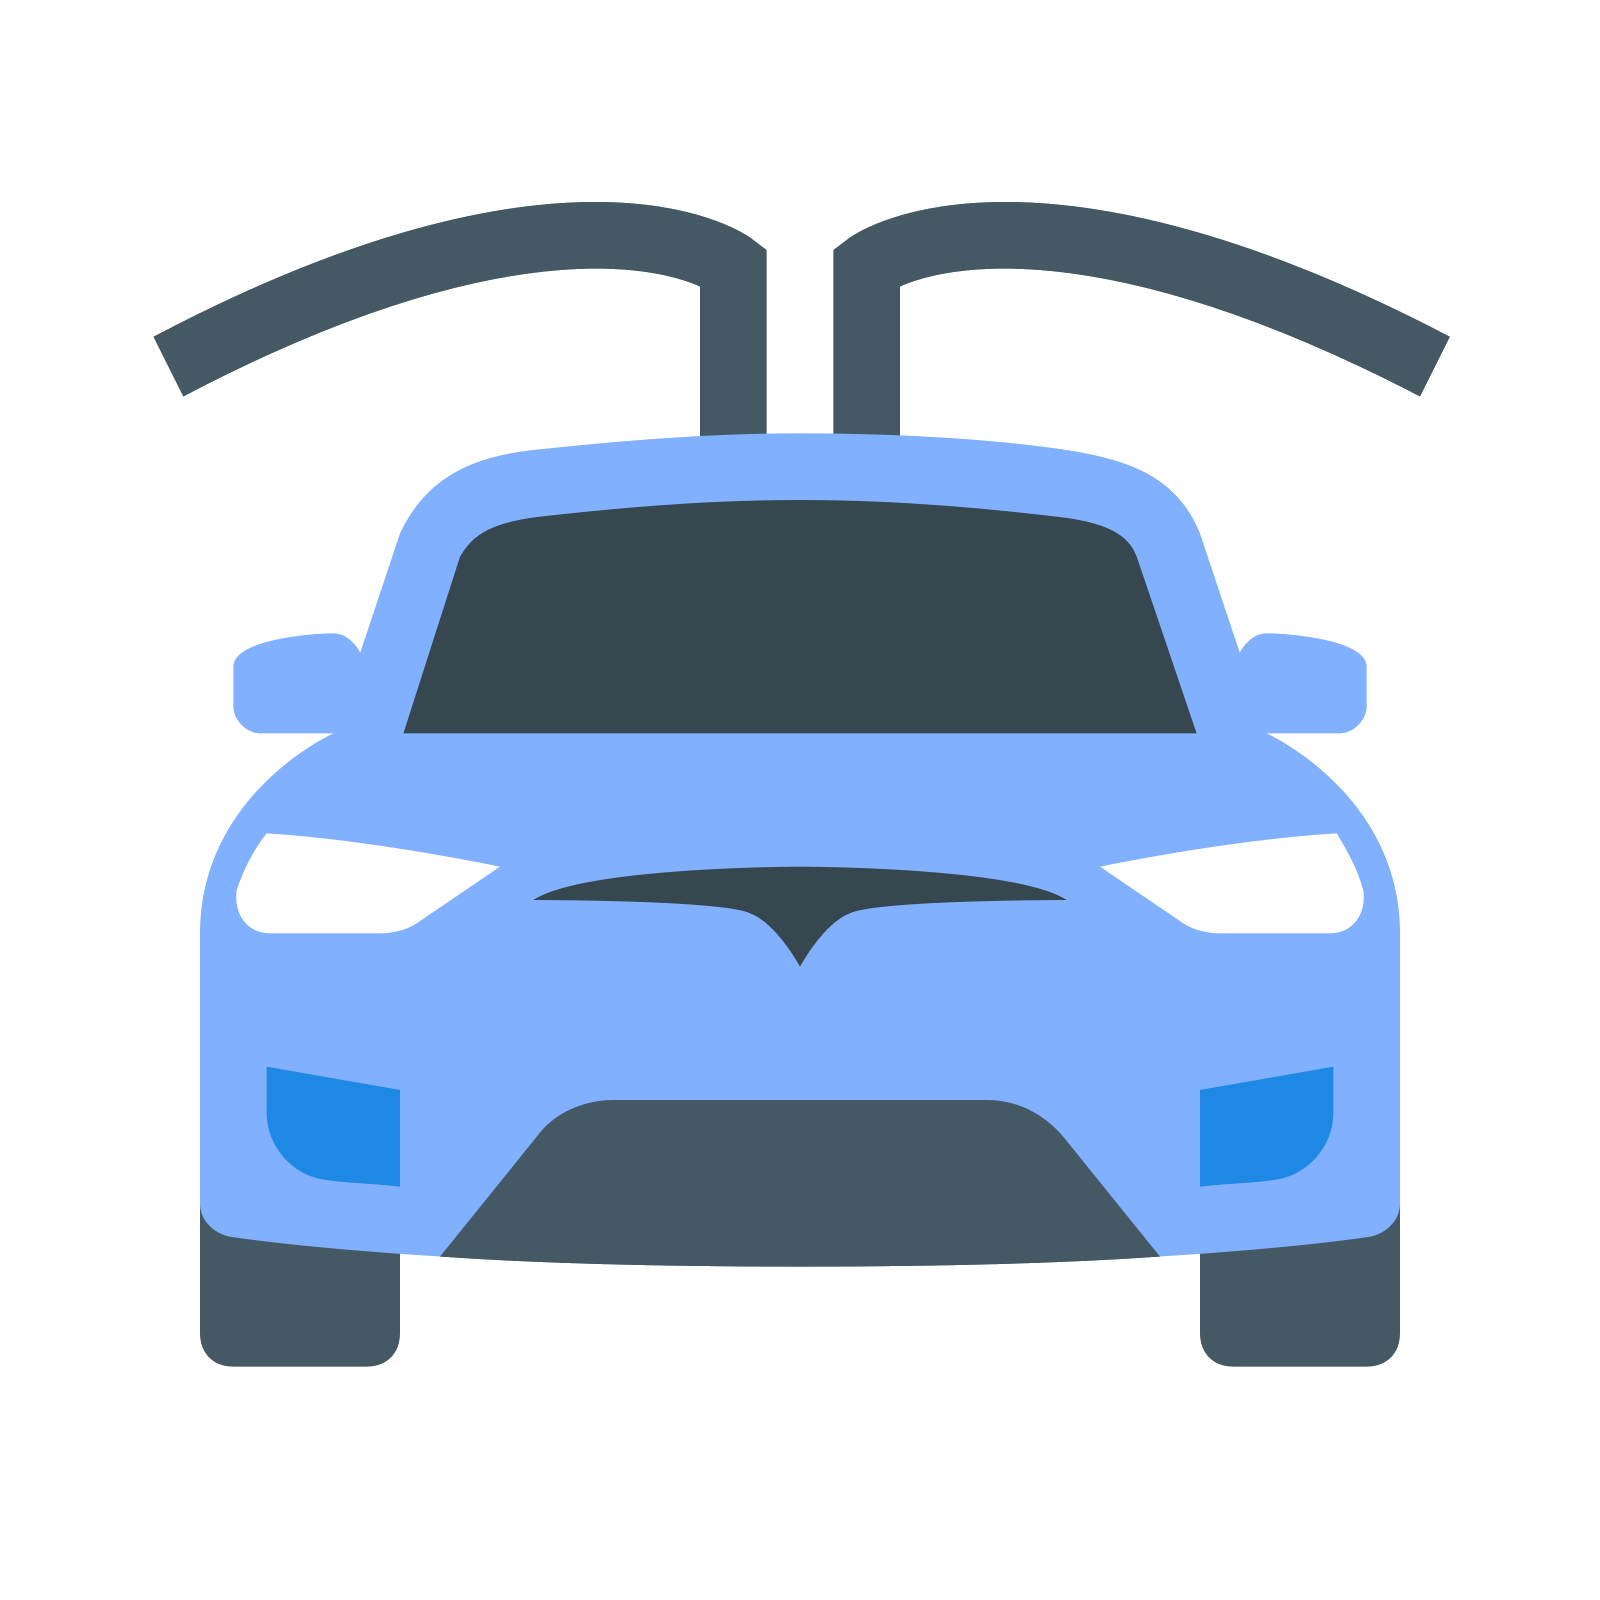 Model x icon free. Tesla vector png transparent